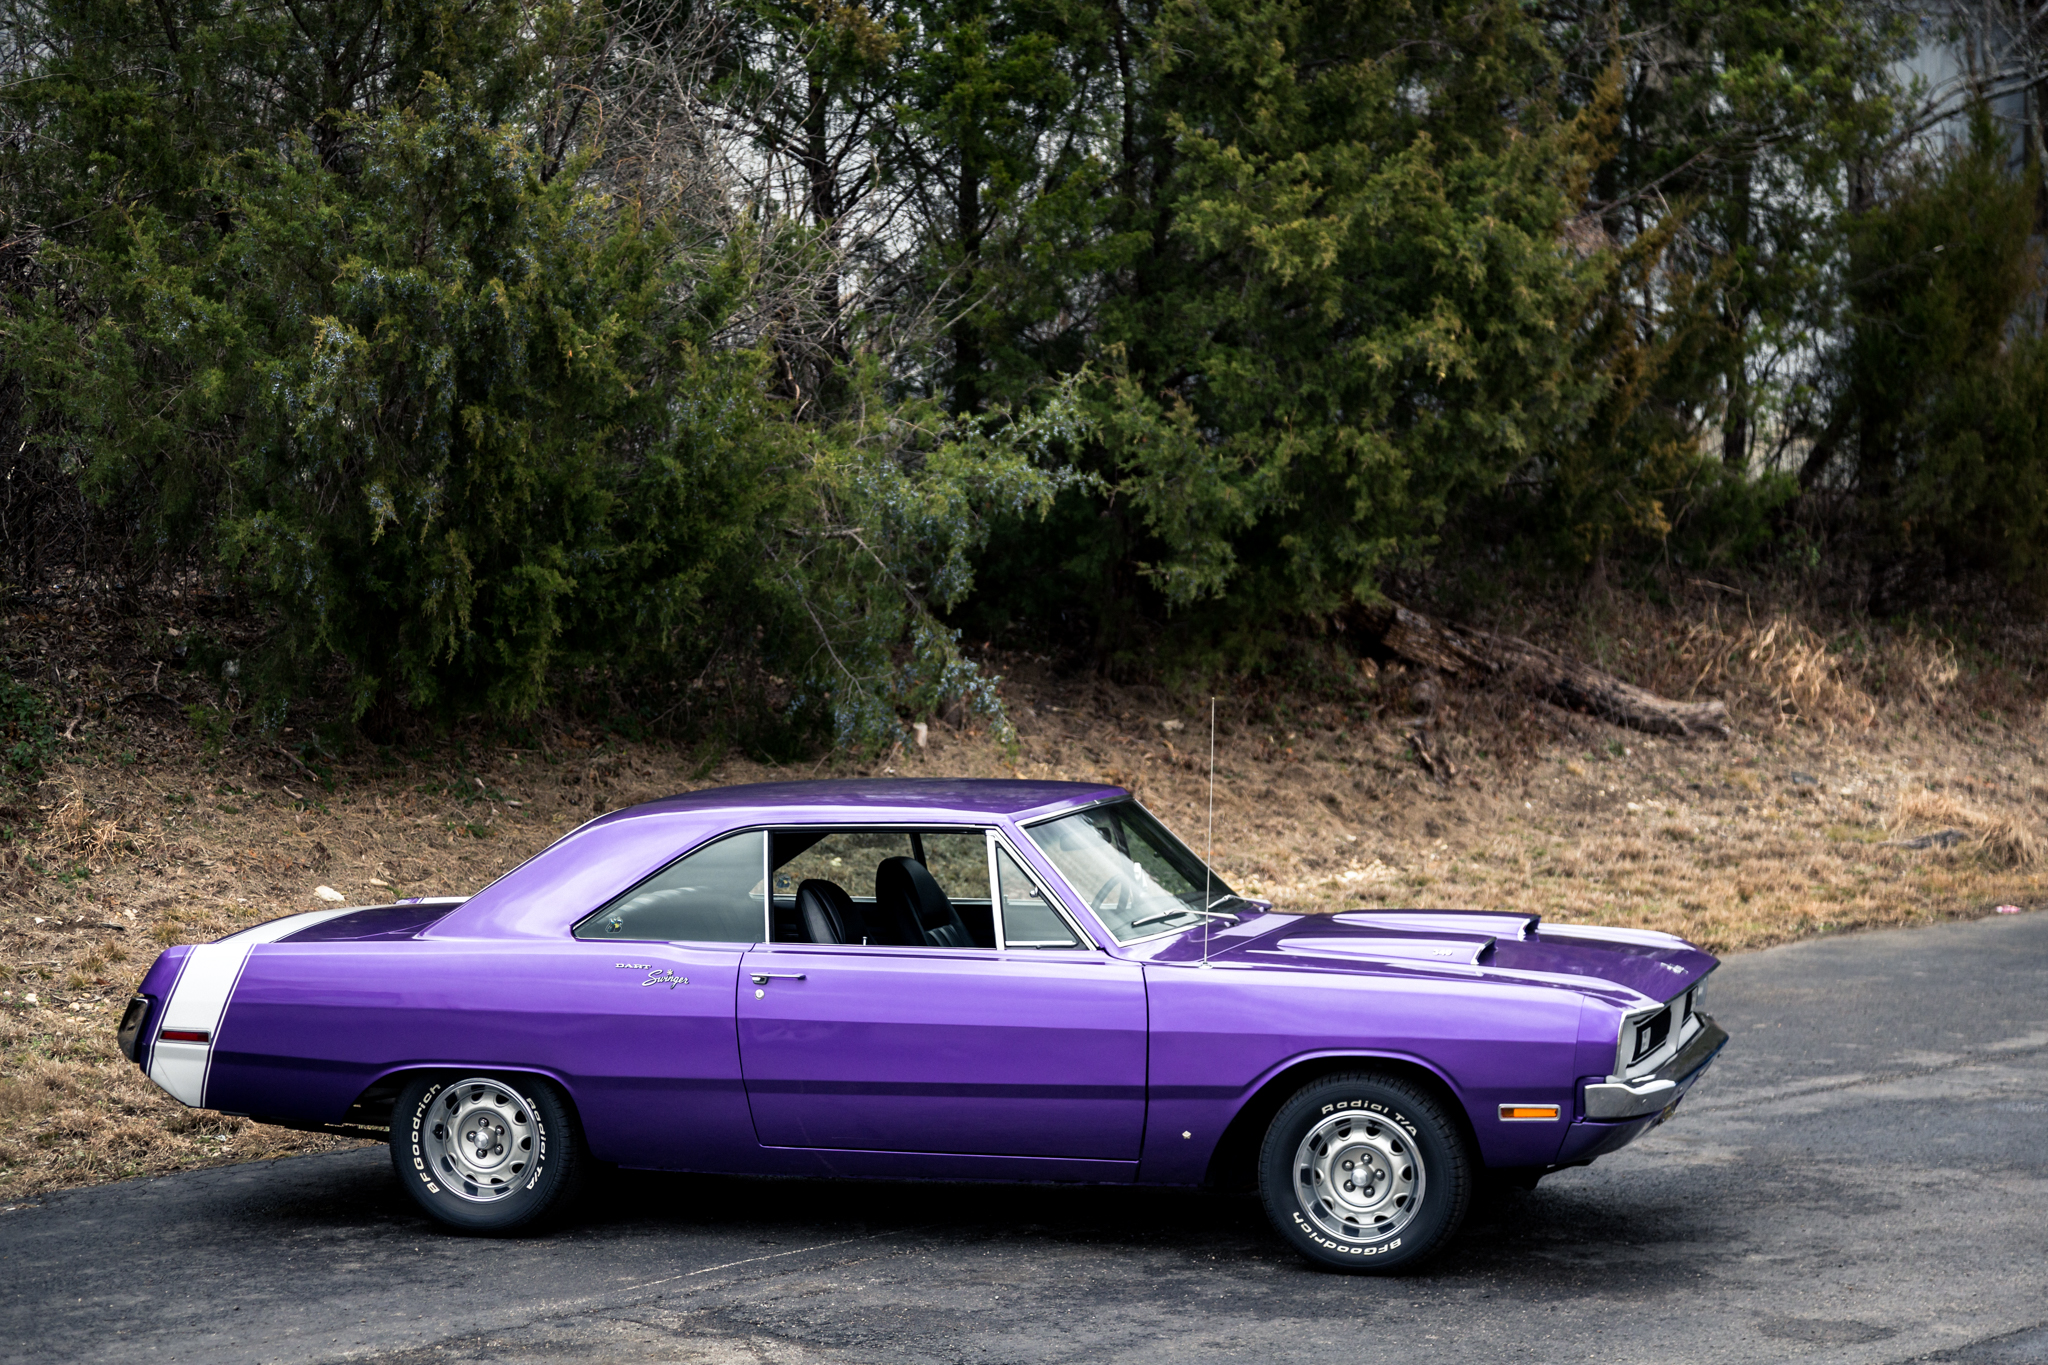 This Plum Crazy 1970 Dodge Dart 340 Swinger Is One Bad Ass Machine That Could Be Yours